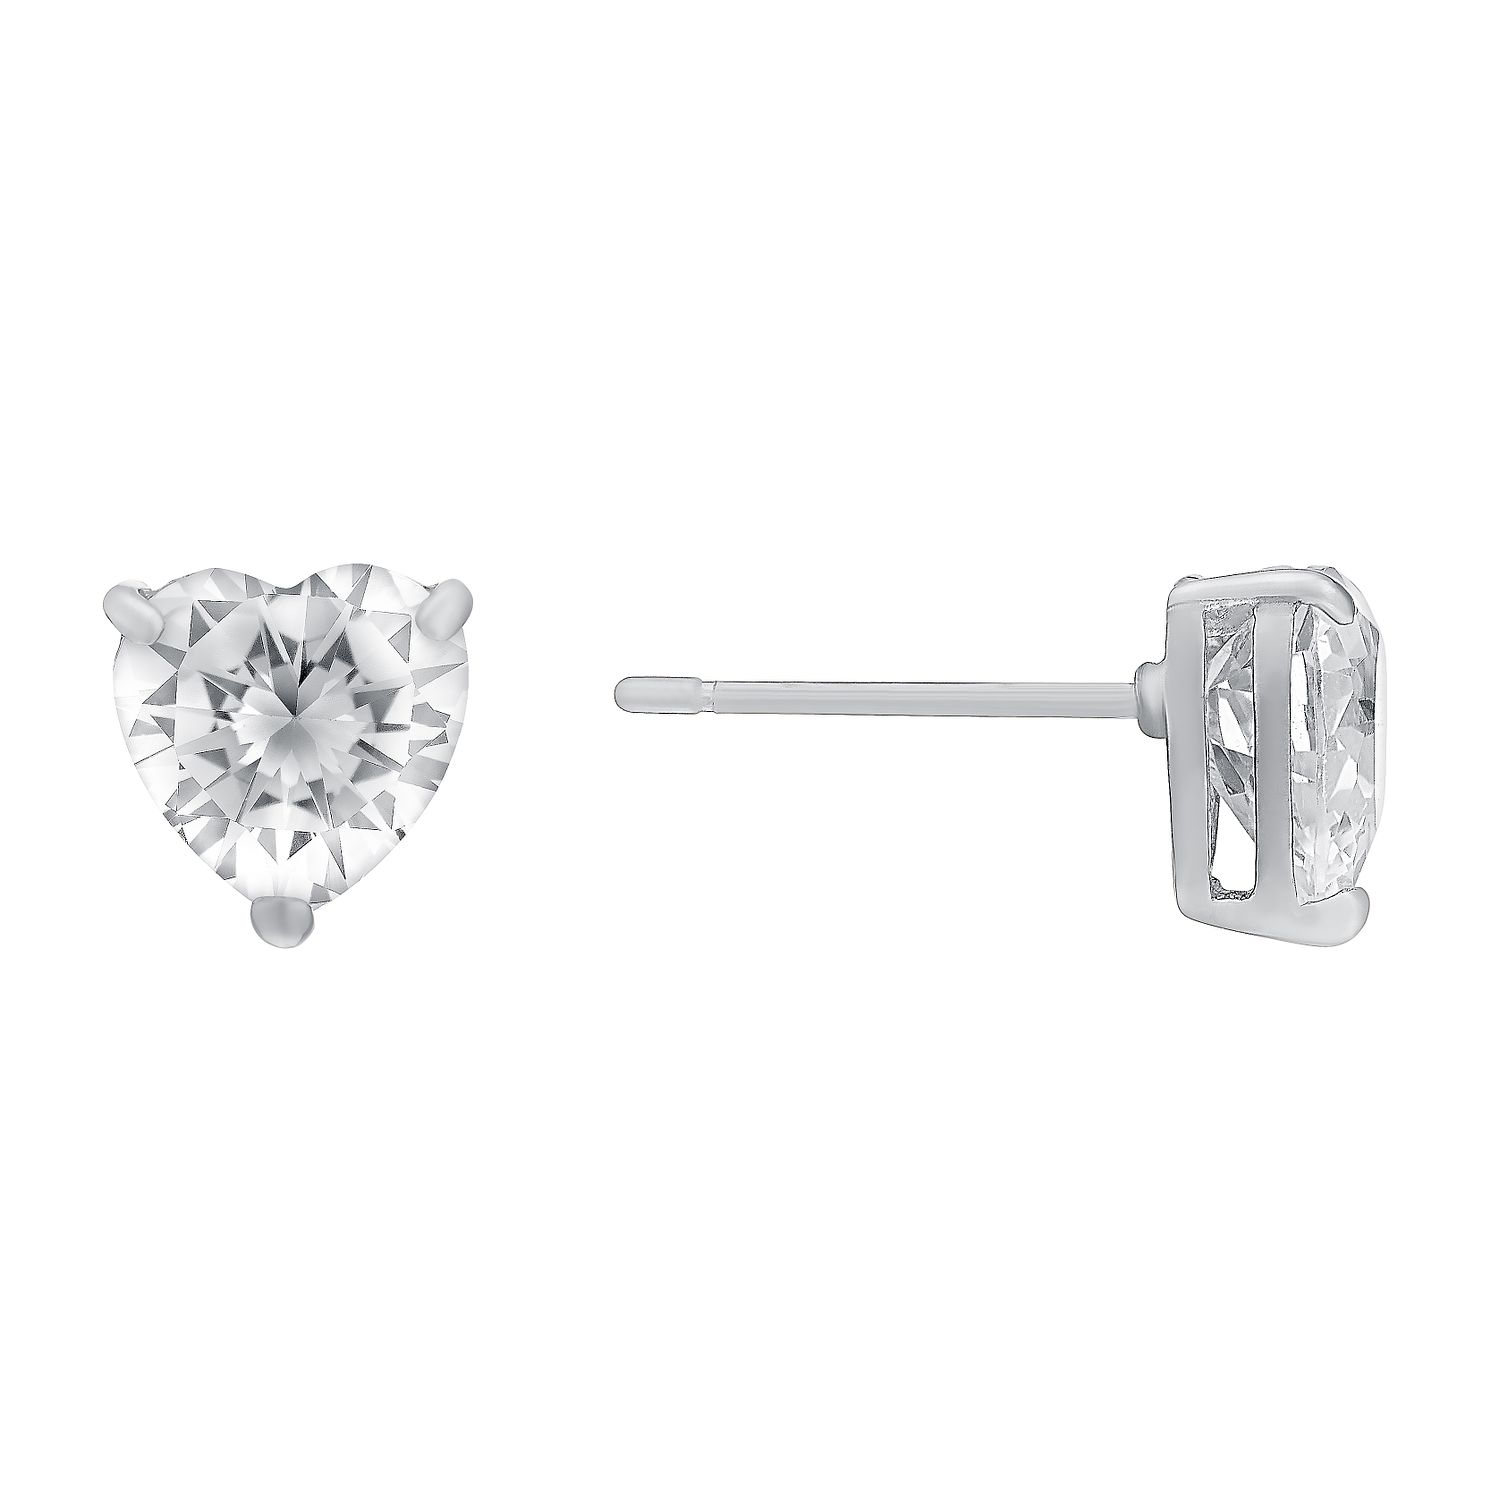 9ct White Gold Heart-Shaped Cubic Zirconia Stud Earrings - Product number 3063496